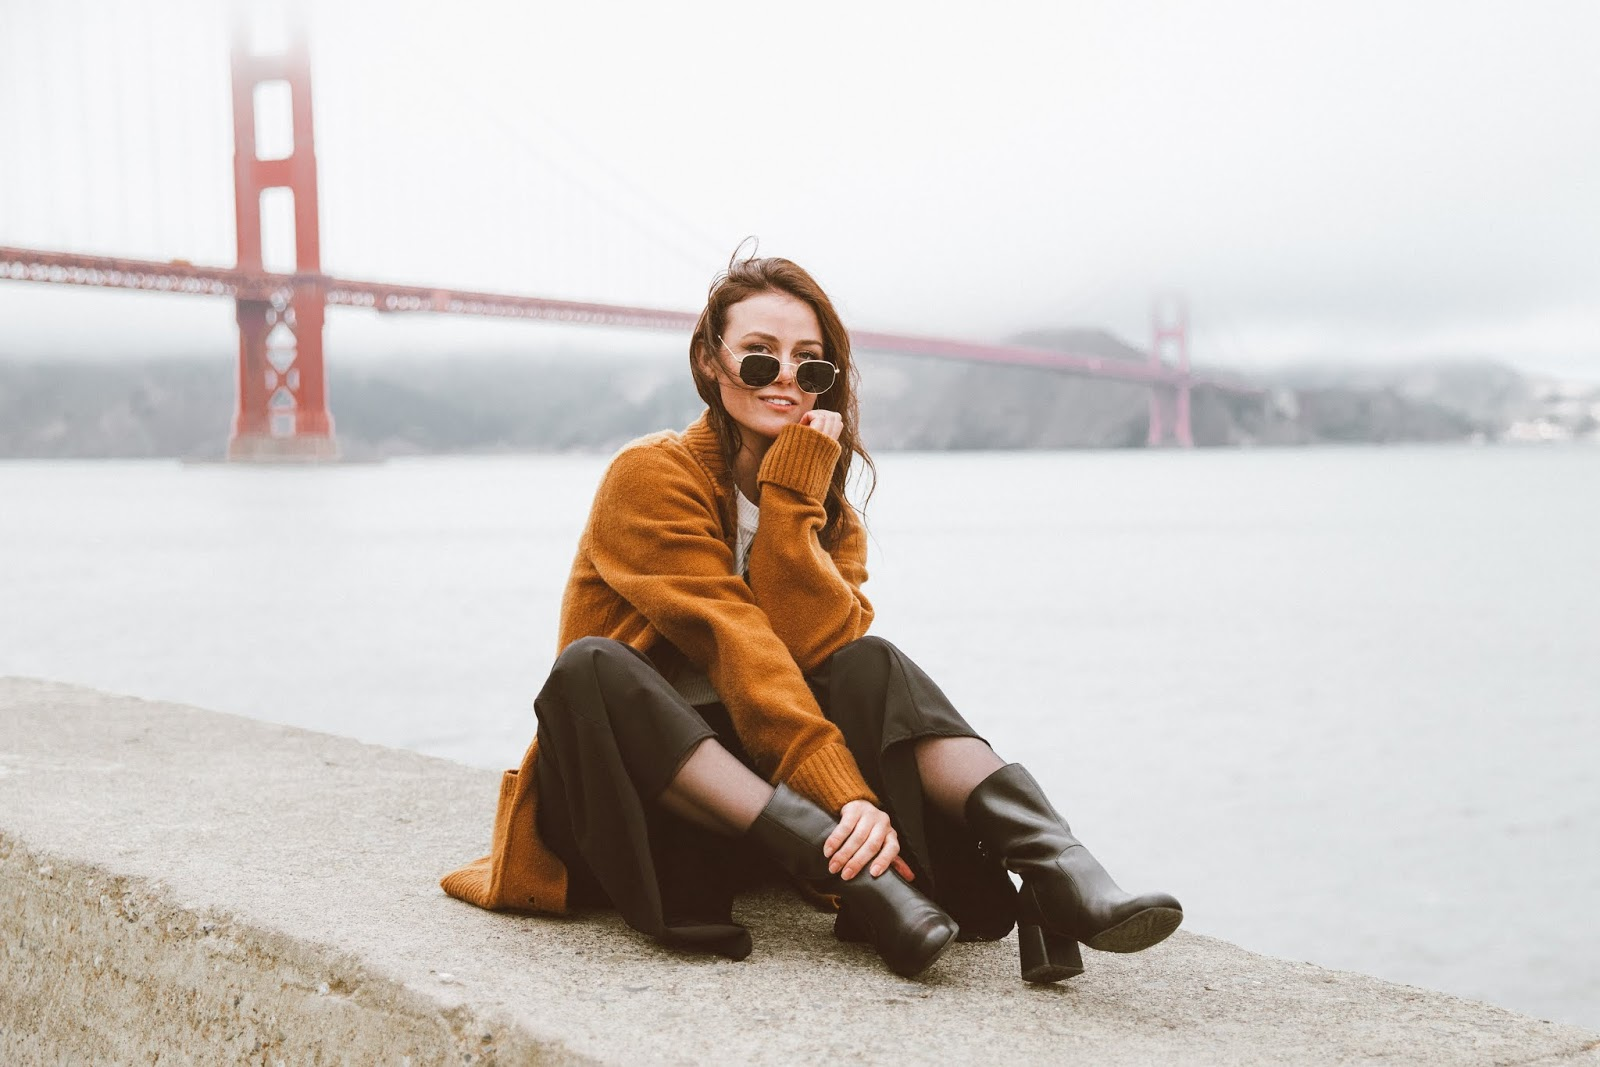 shelly stuckman, ArizonaGirl.com, San Francisco, travel blog, fashion blogger, Golden Gate Bridge